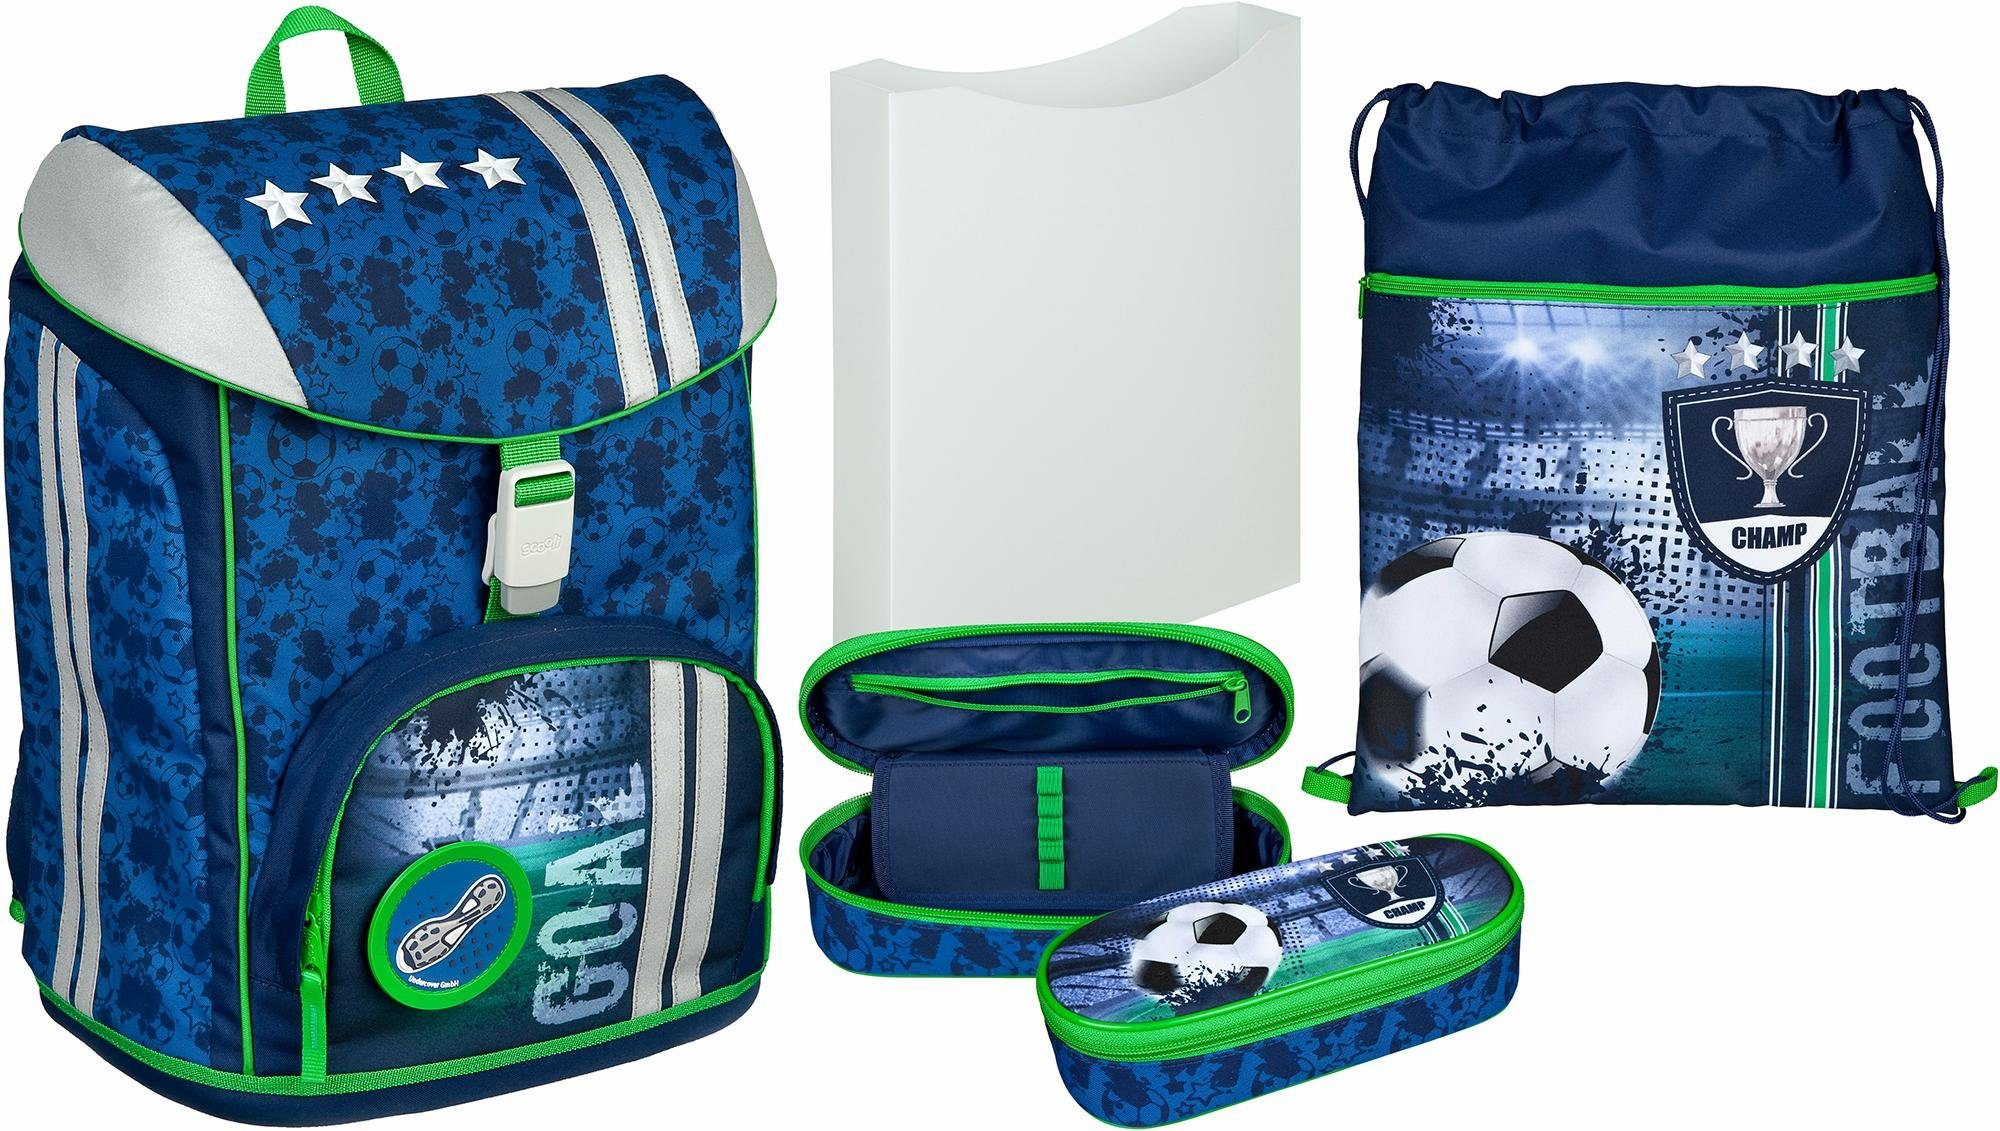 Scooli Schulrucksack Set 5-tlg., »FlexMax Football Cup«